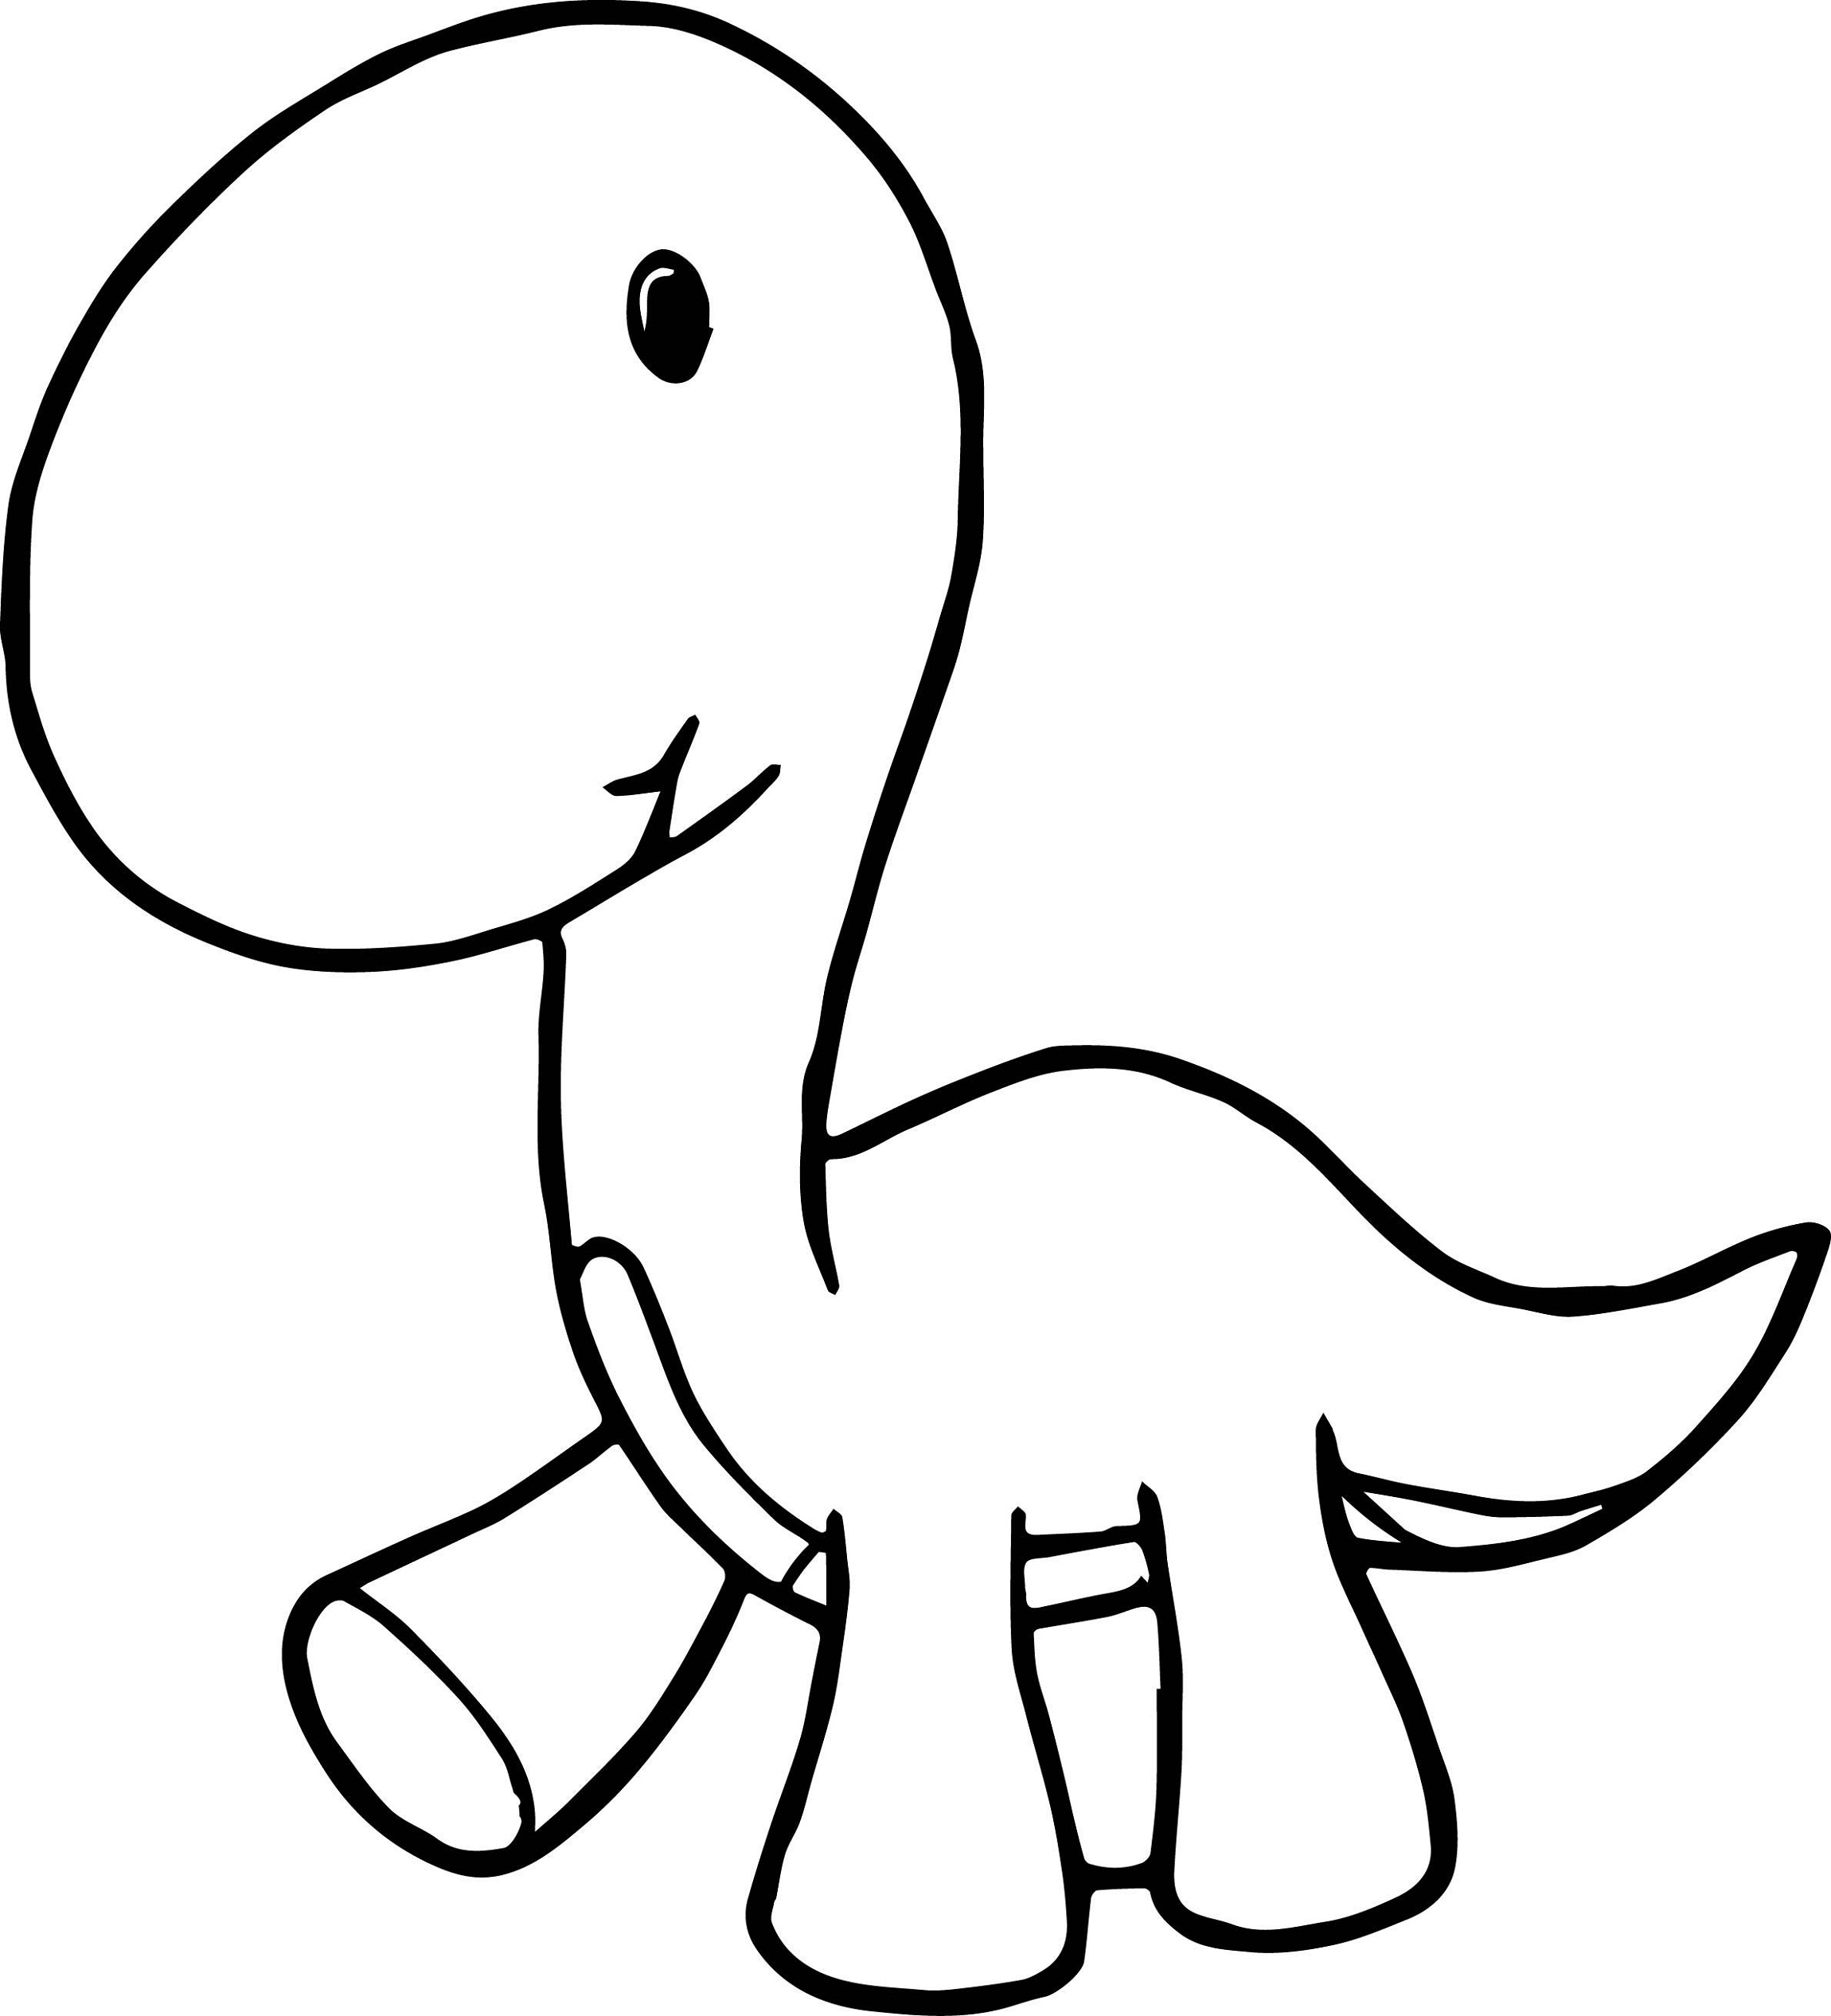 Baby Dinosaur Coloring Pages For Preschoolers